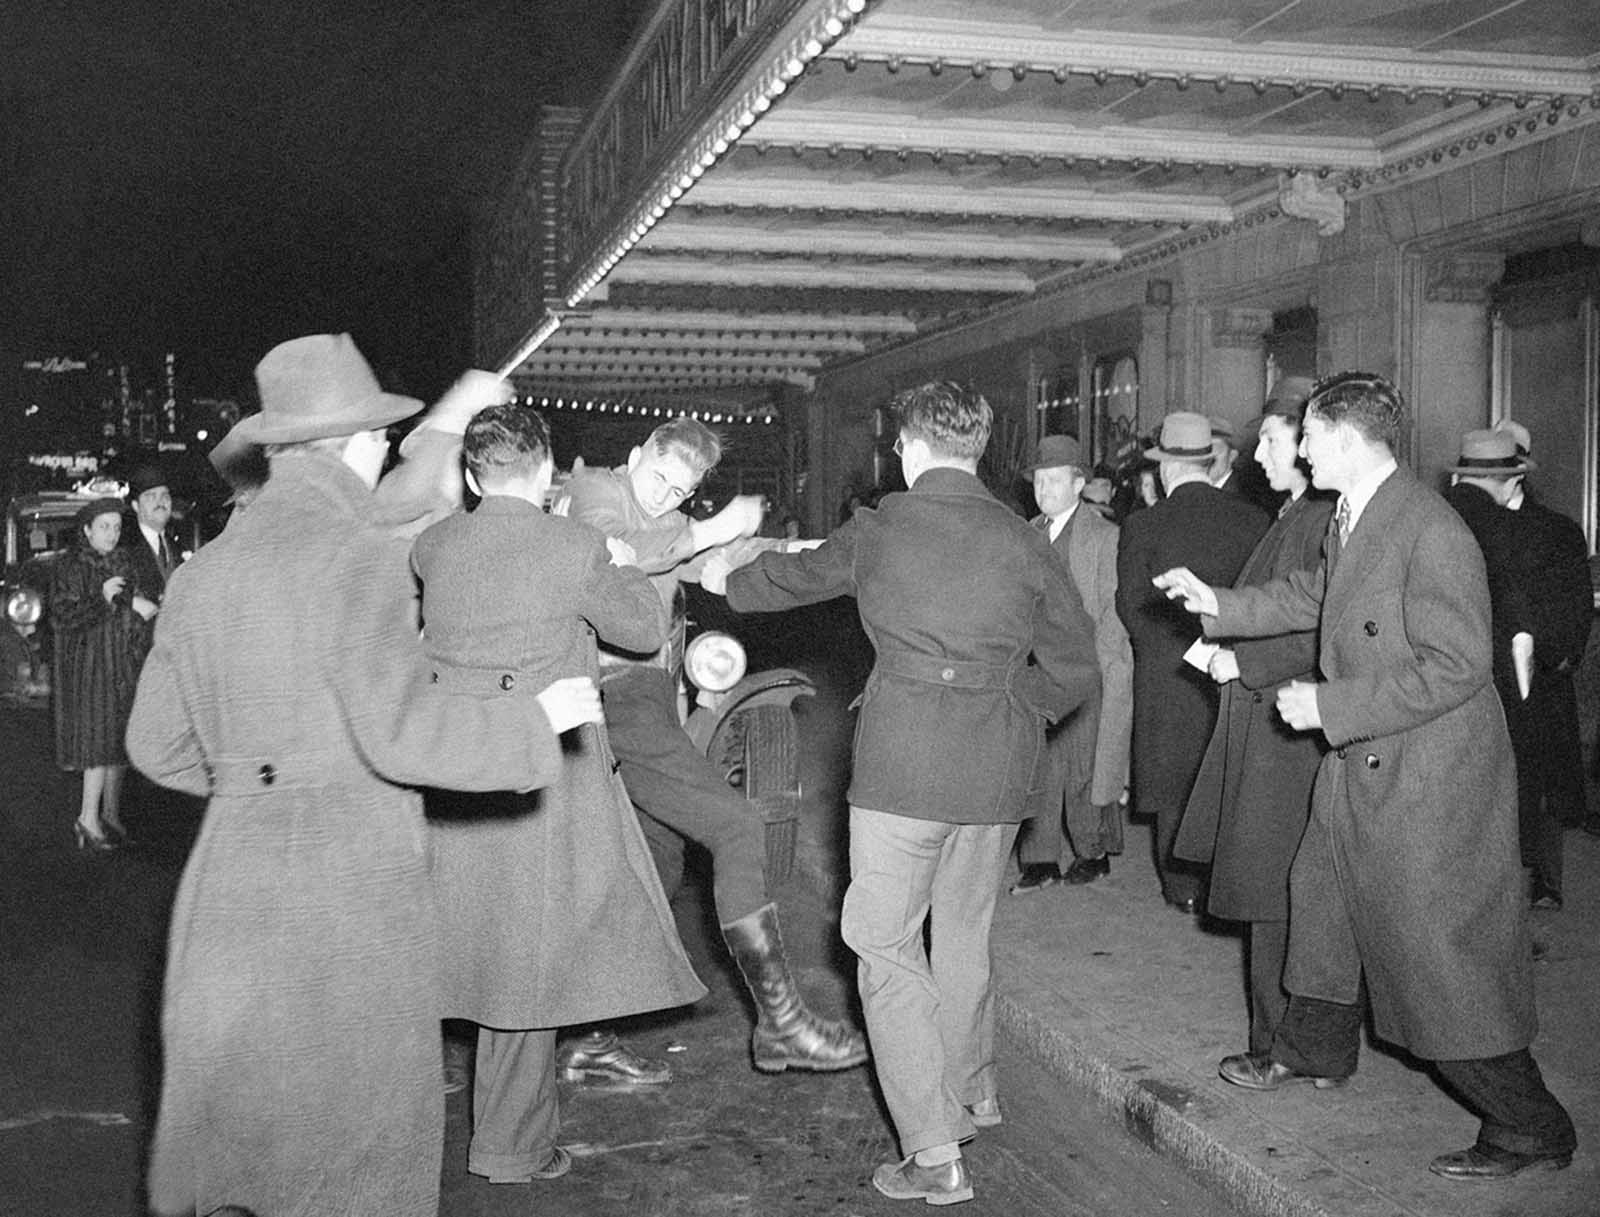 A crowd of demonstrators outside New York's Madison Square Garden seize a uniformed member of the German American Bund who had emerged from a Bund rally in the Garden and attempted to enter a taxi, on February 20, 1939.